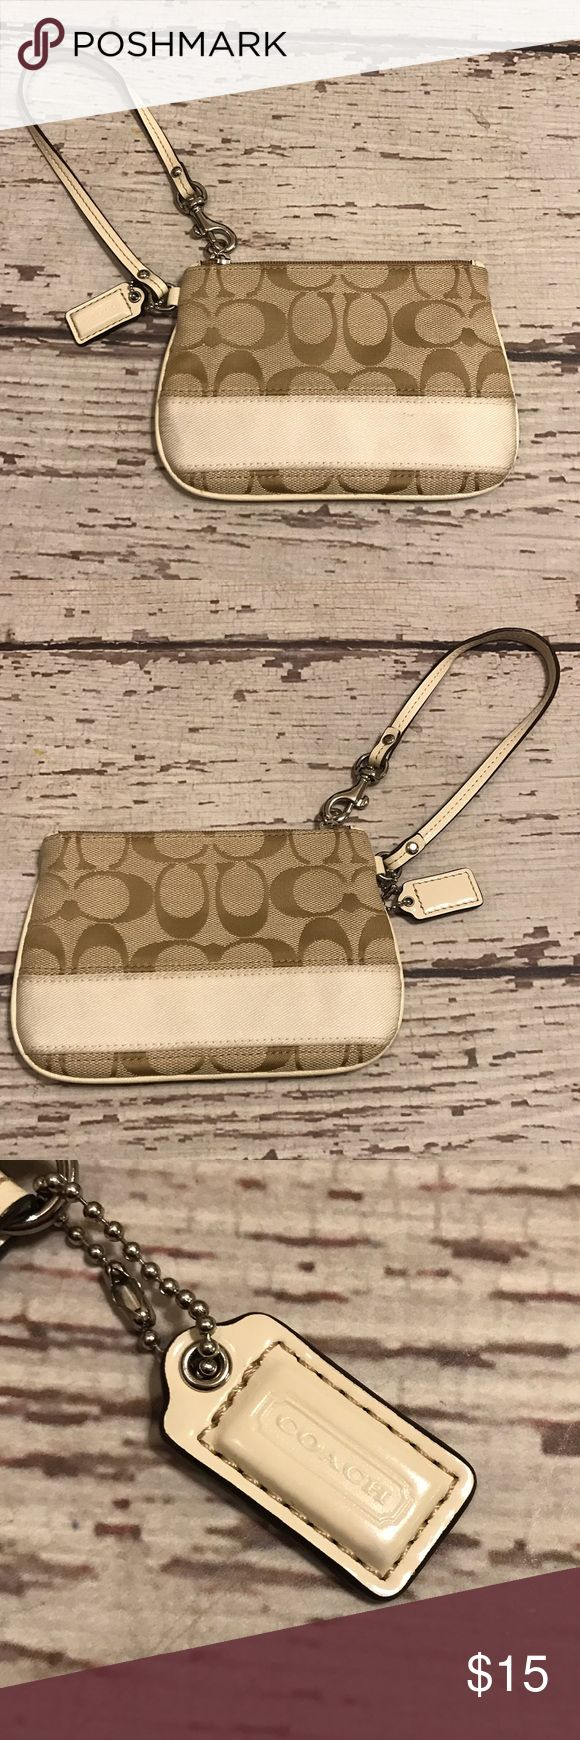 Tan Coach Wristlet Very lightly used Coach wristlet. Great condition. Tan lining. Coach Bags Clutches & Wristlets